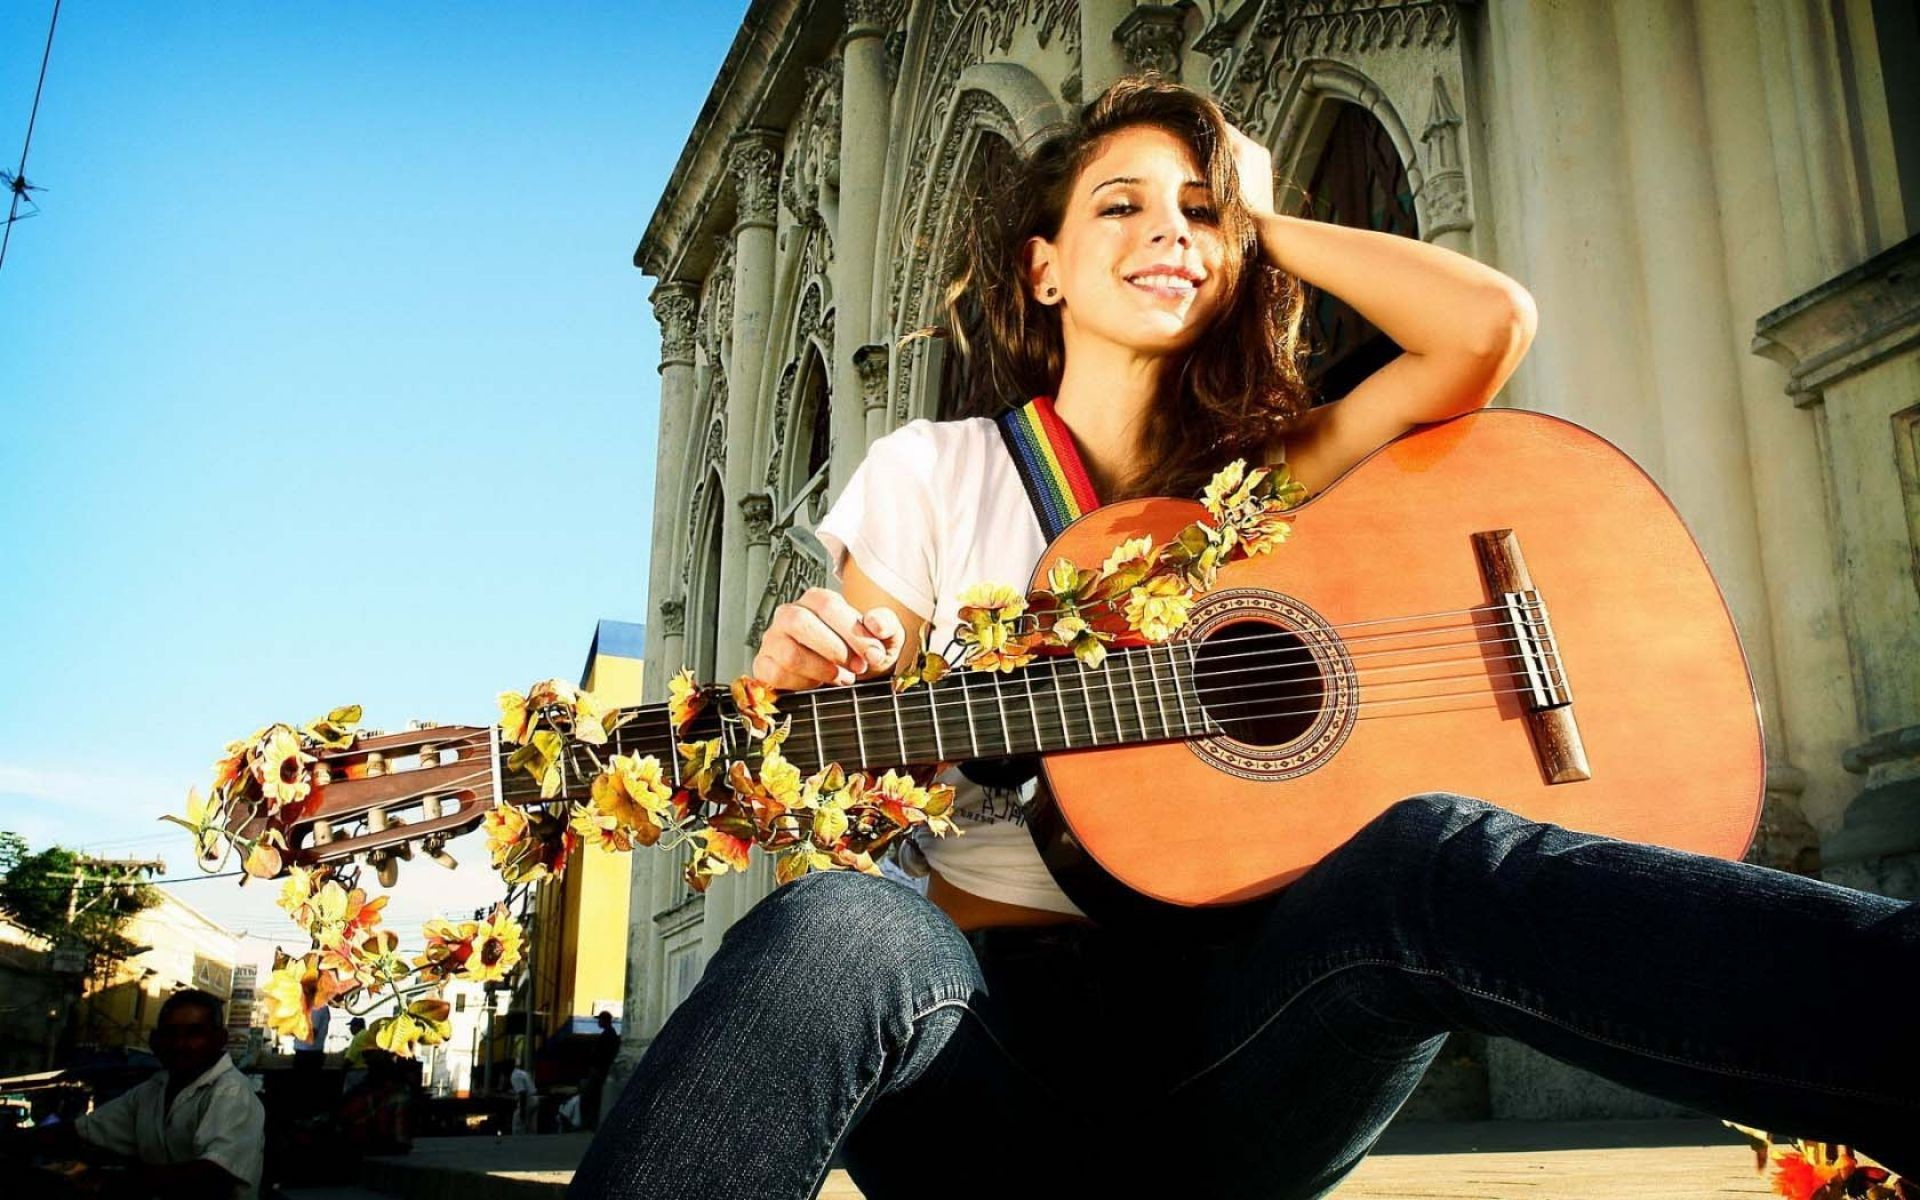 Res: 1920x1200, girl playing guitar Wallpaper   HD Dance and Music Wallpaper Free Download  ...